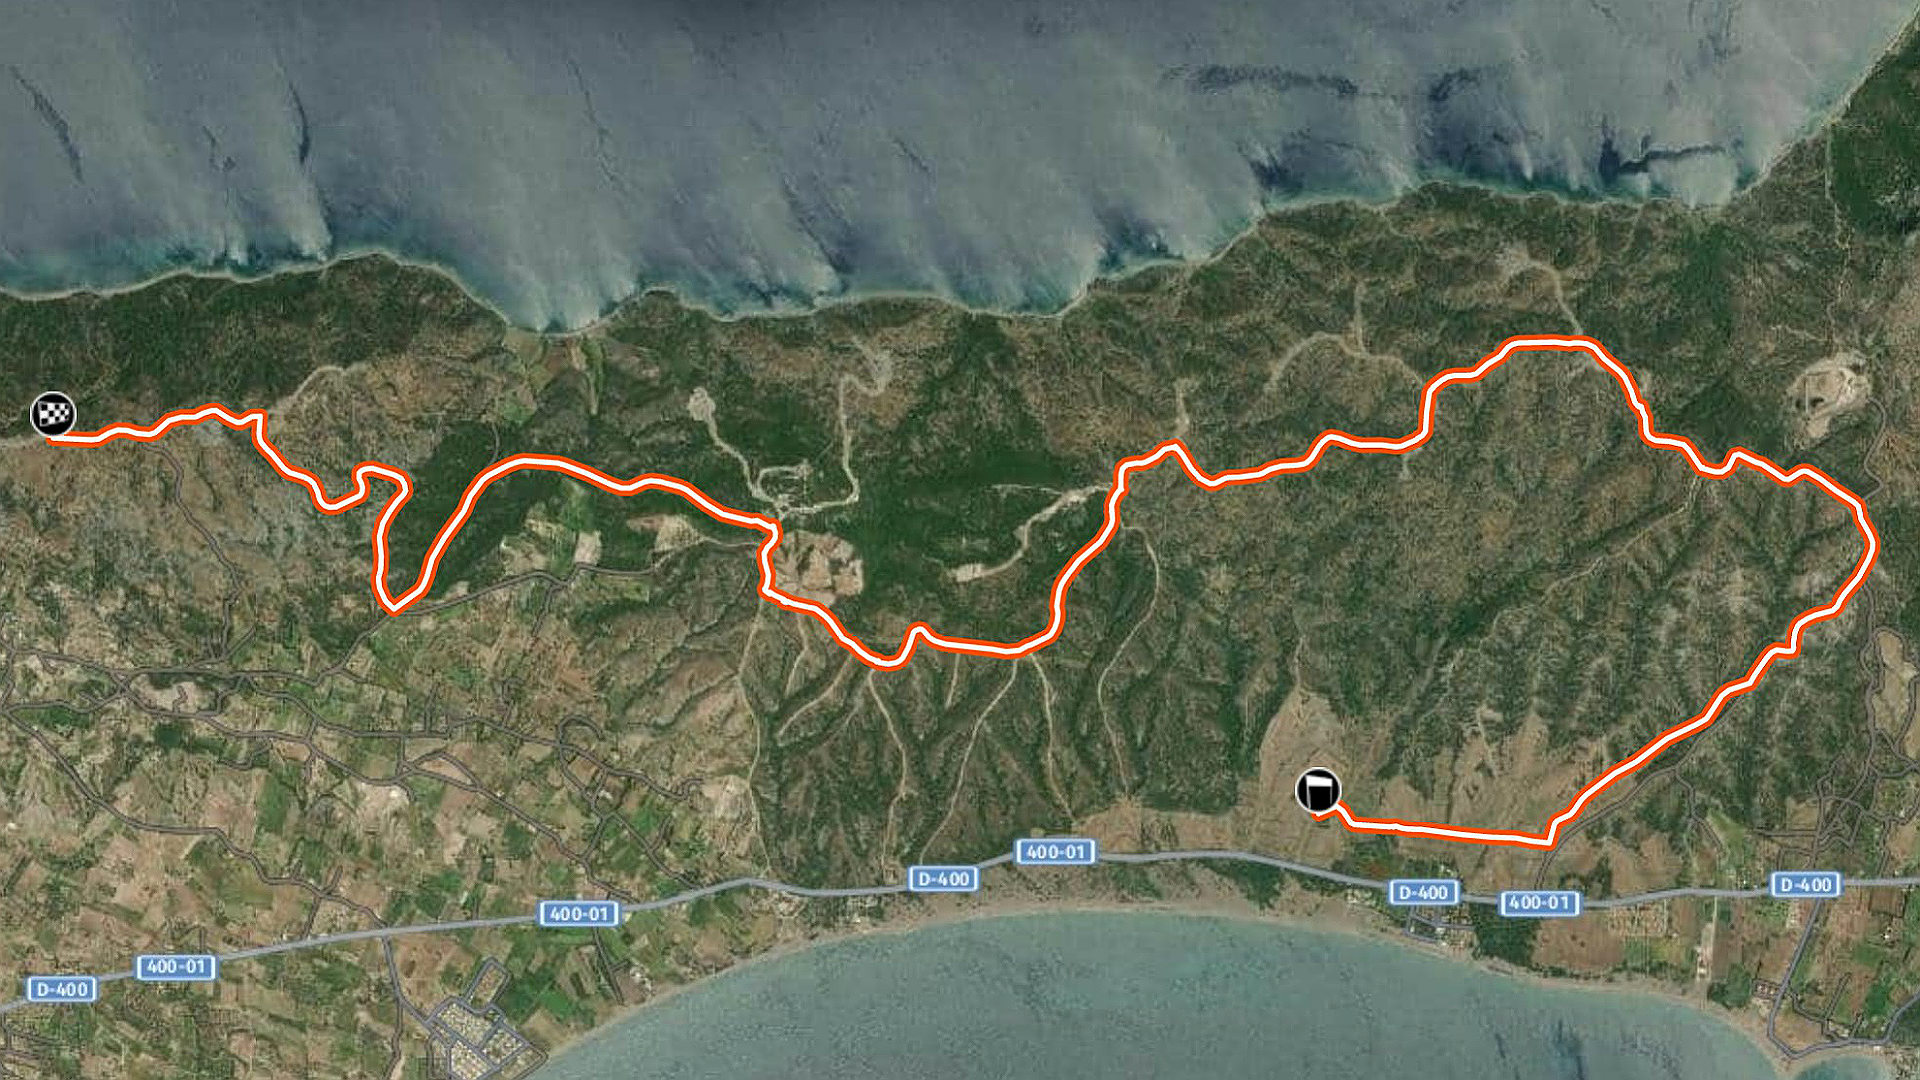 WRC: Marmaris Rally Turkey [18-20 Septiembre] - Página 3 190920_WRC-SS5map-Turkey-2020_001